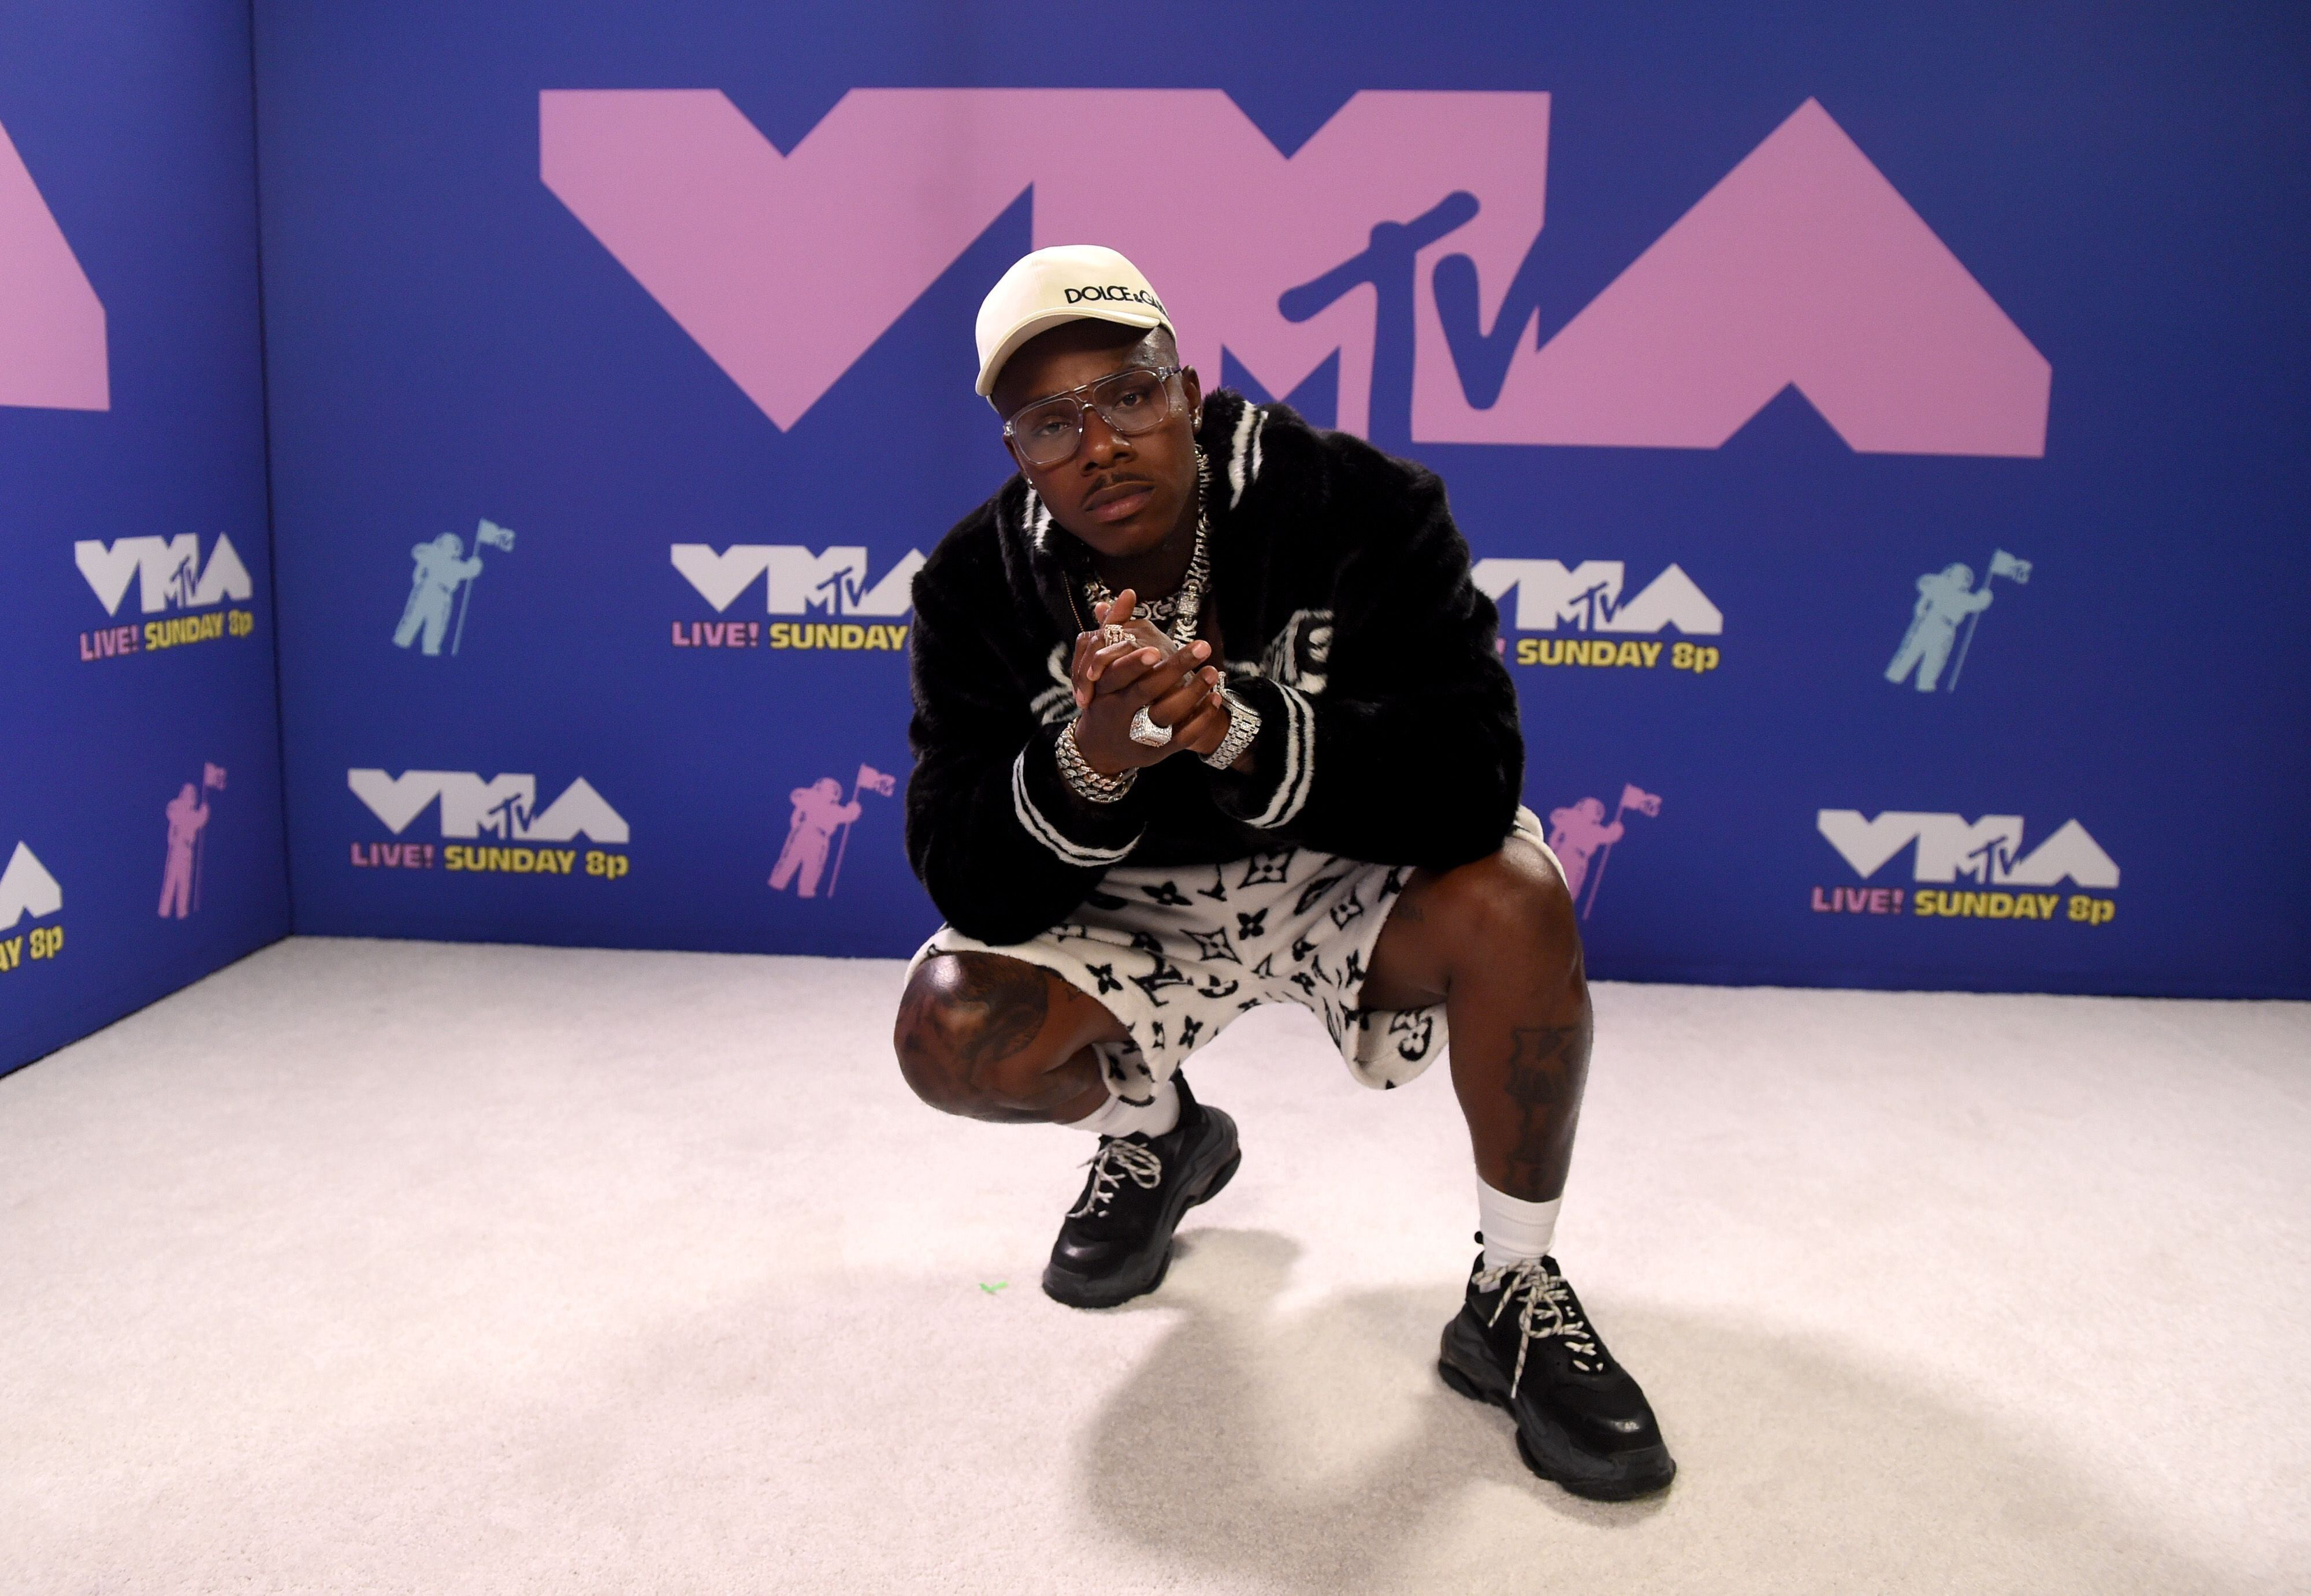 UNSPECIFIED - AUGUST 2020: DaBaby attends the 2020 MTV Video Music Awards, broadcast on Sunday, August 30th 2020.  (Photo by